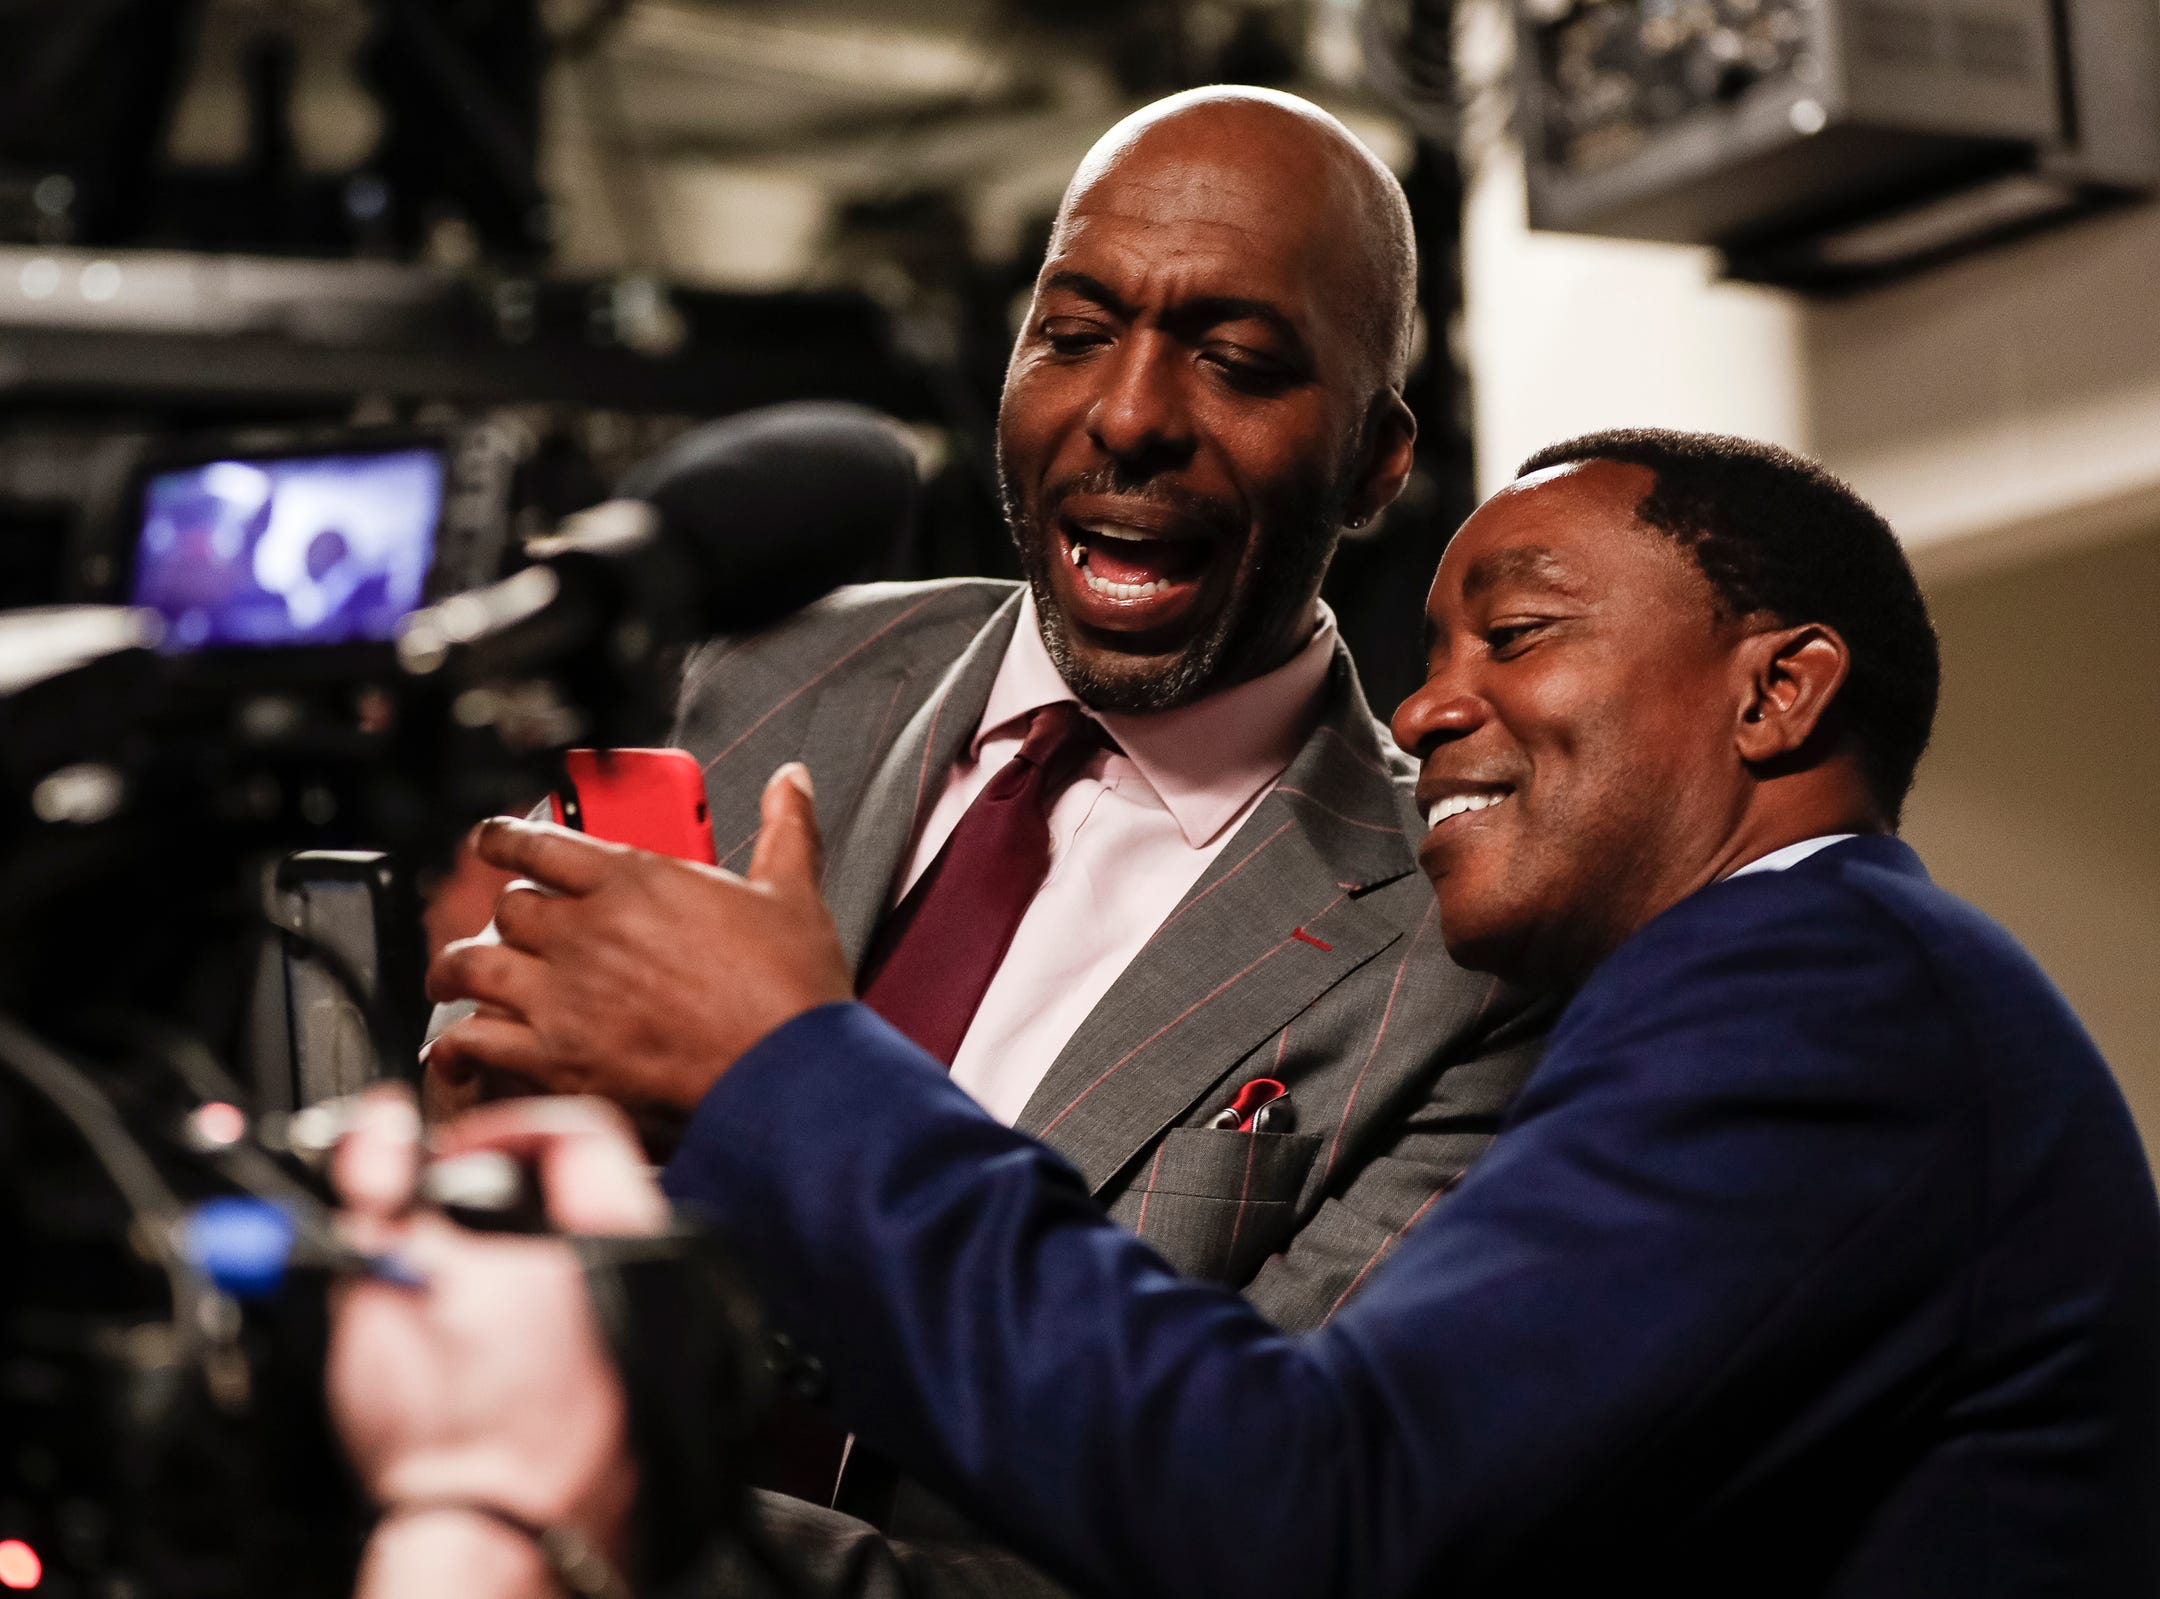 Isiah Thomas and John Salley try to set up live video on a phone before they walked out of the tunnel for the 30th anniversary of the 1989-90 back-to-back championships at the Little Caesars Arena in Detroit, Saturday, March 30, 2019.